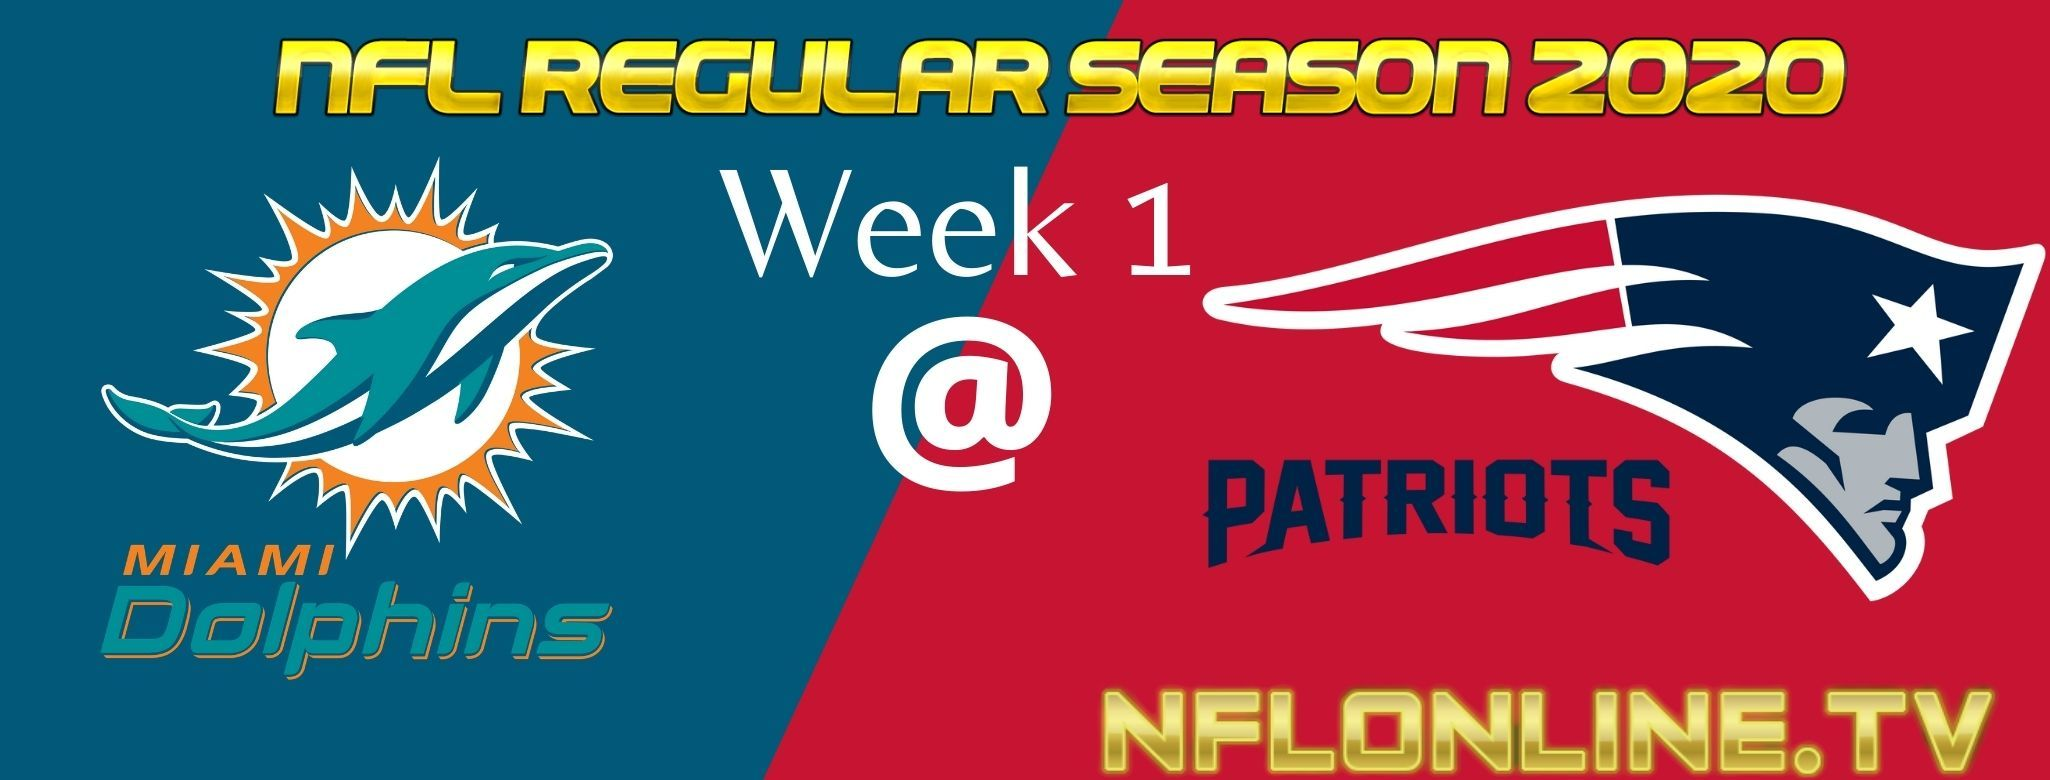 Miami Dolphins Vs New England Patriots Live Stream 2020 Full Game Replay Nfl Week 1 Reg In 2020 Nfl Week Nfl New England Patriots